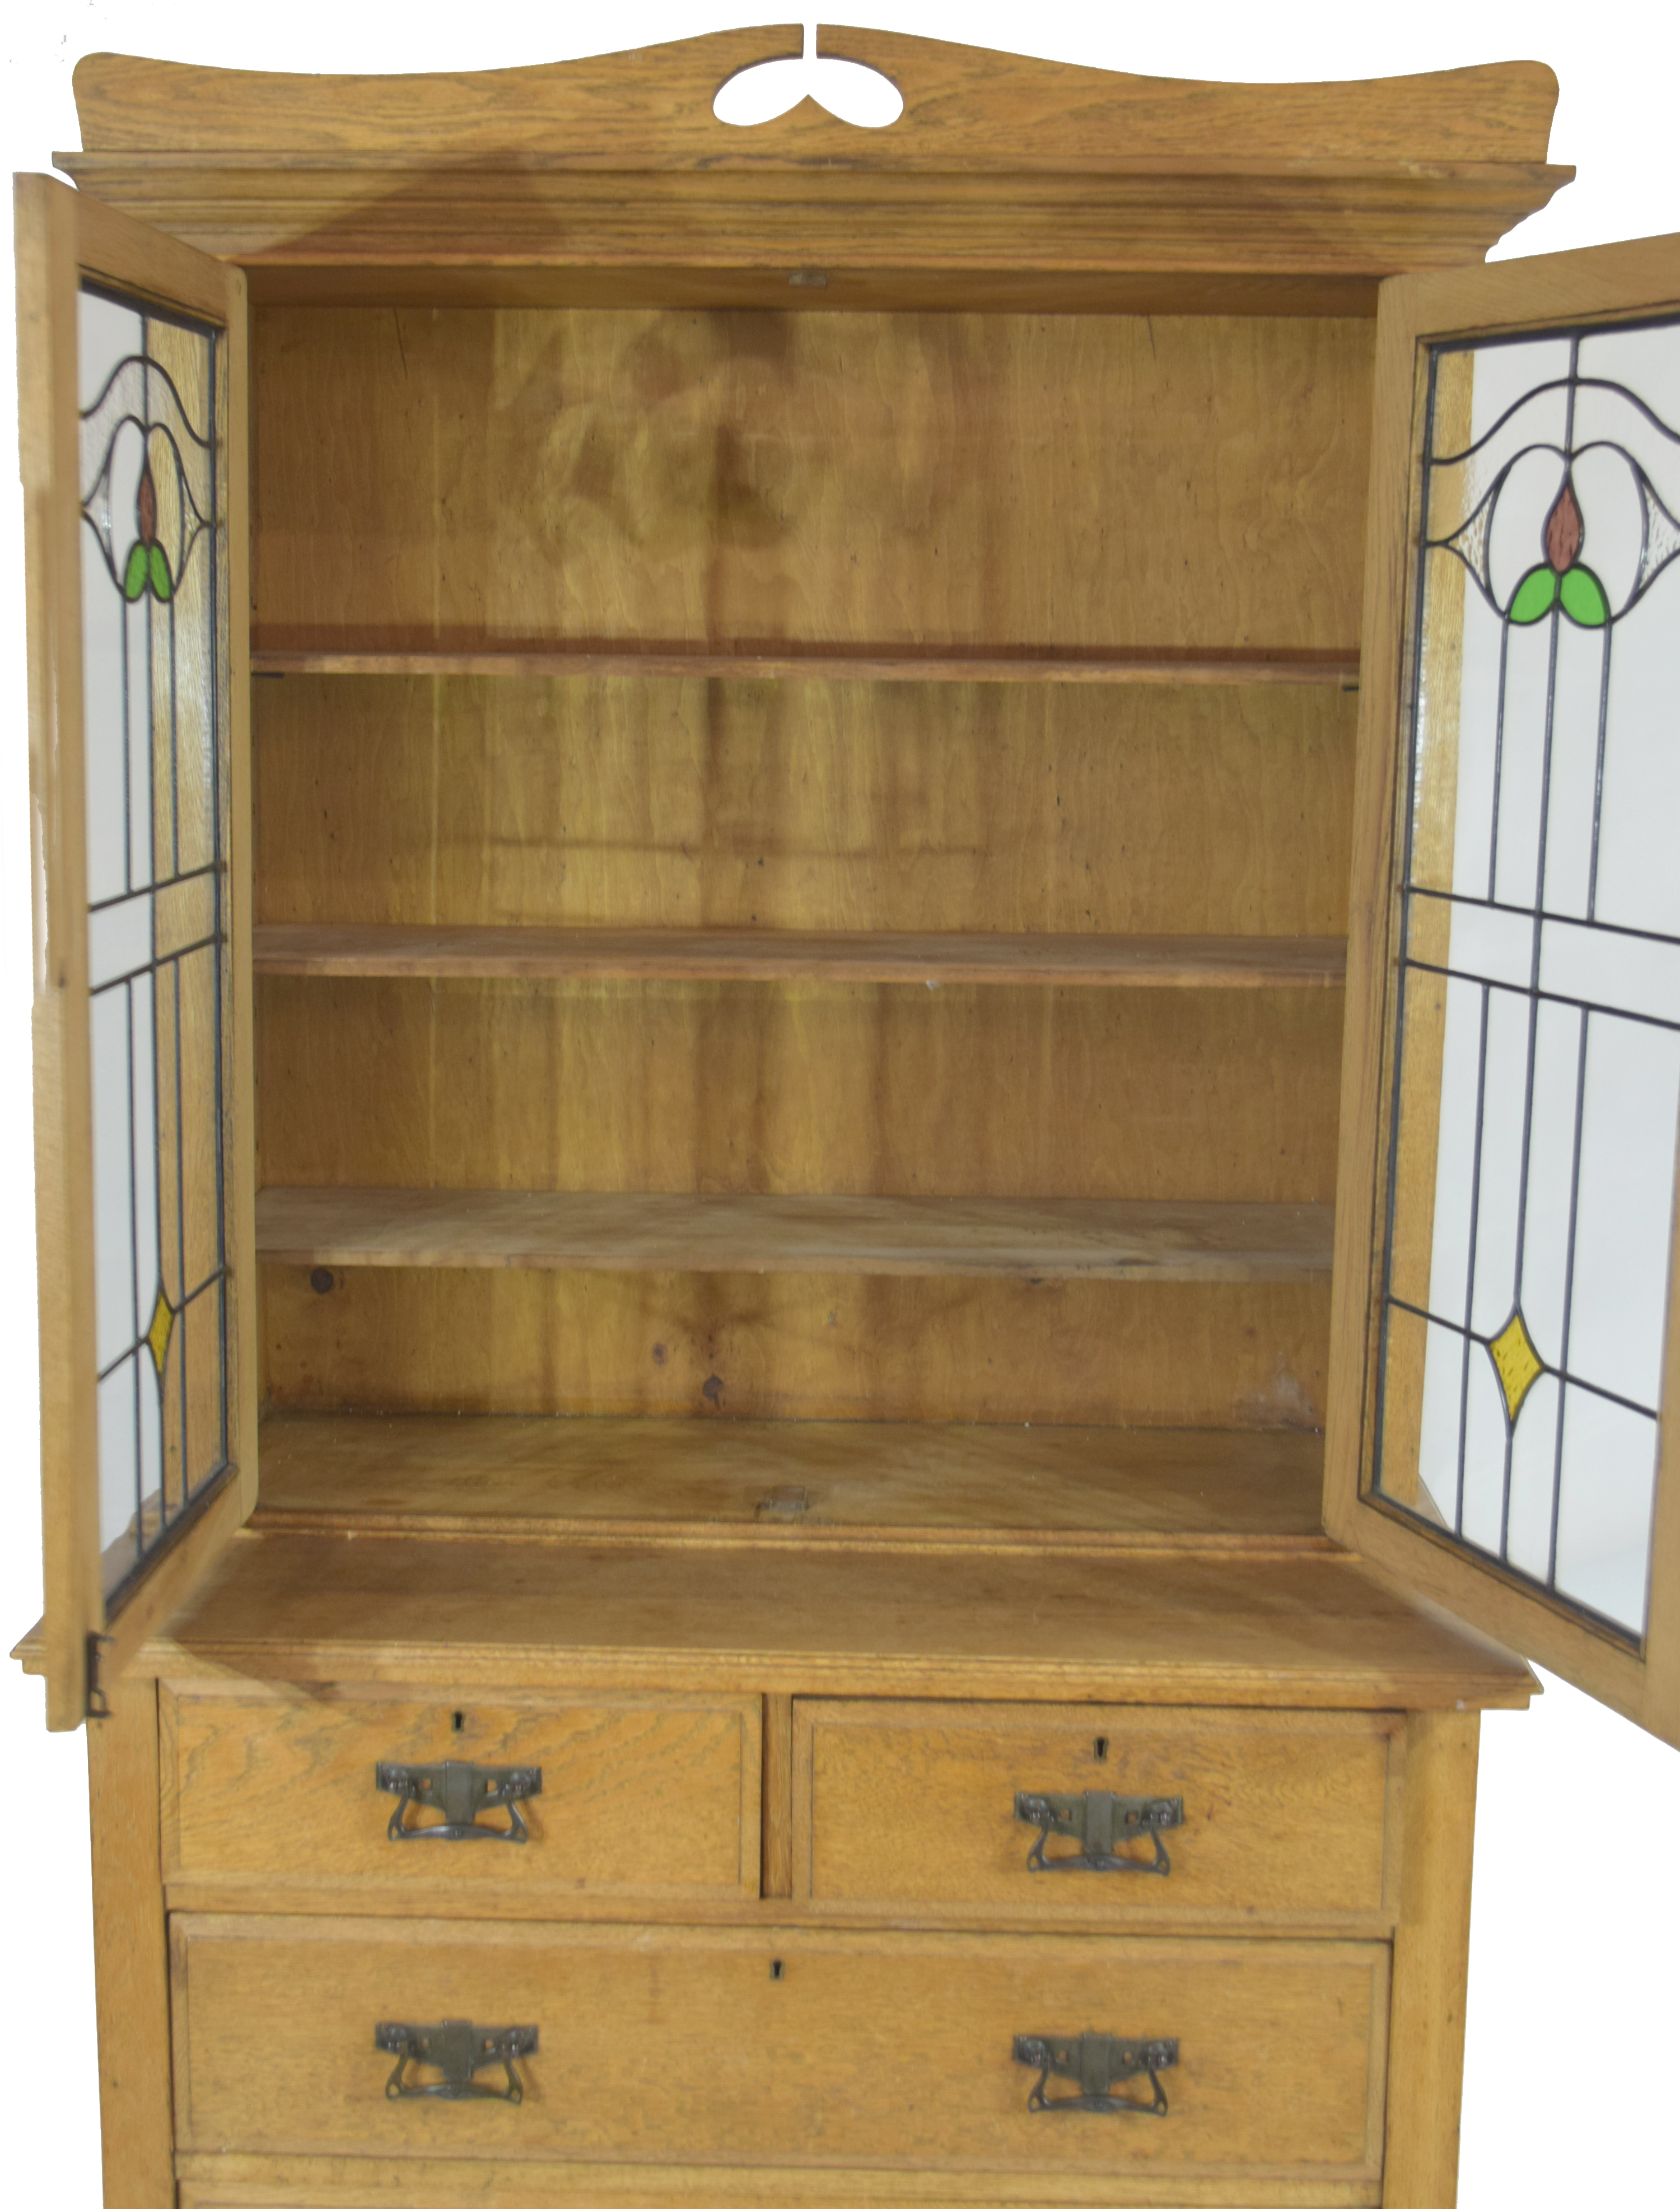 Late 19th century light oak two-piece cabinet, the top section with double glazed doors with Art - Image 2 of 7